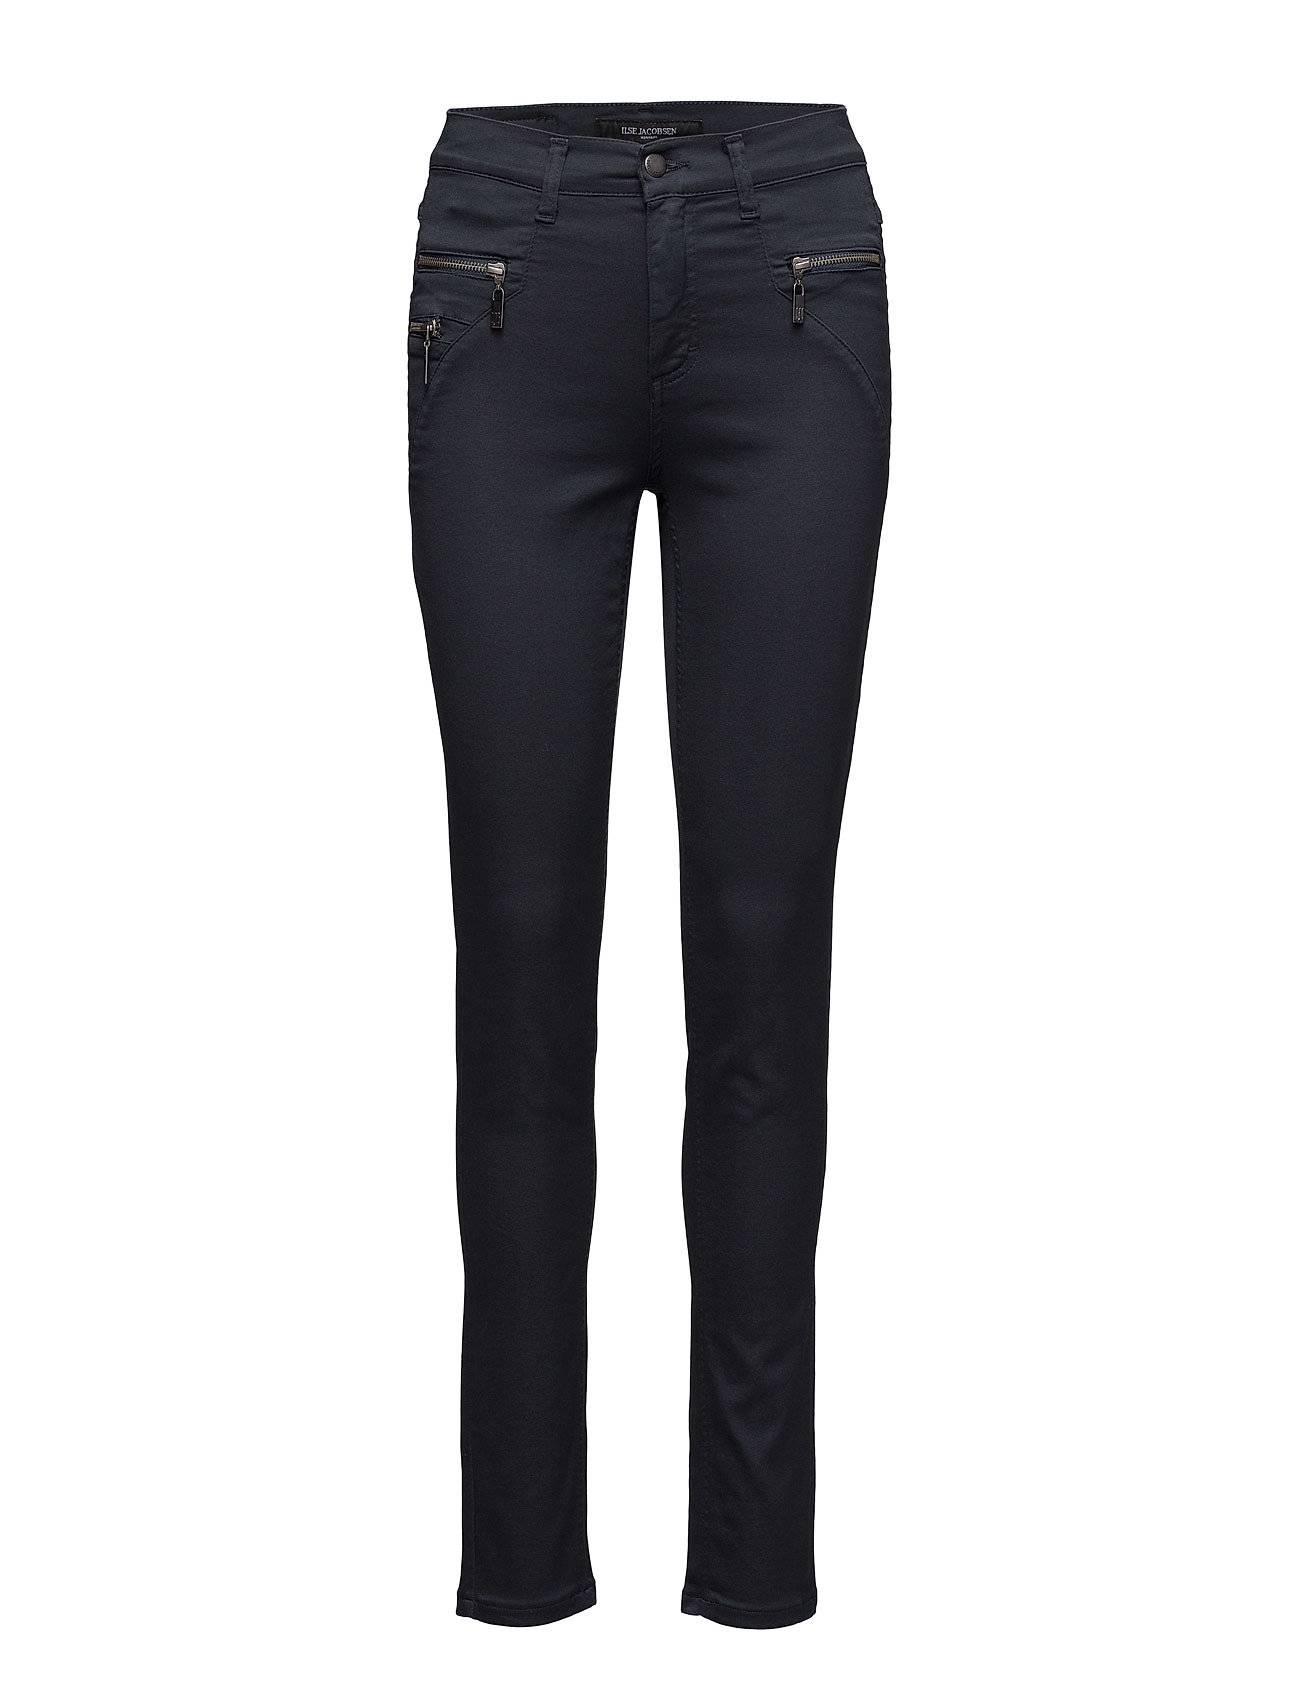 Ilse Jacobsen Trousers